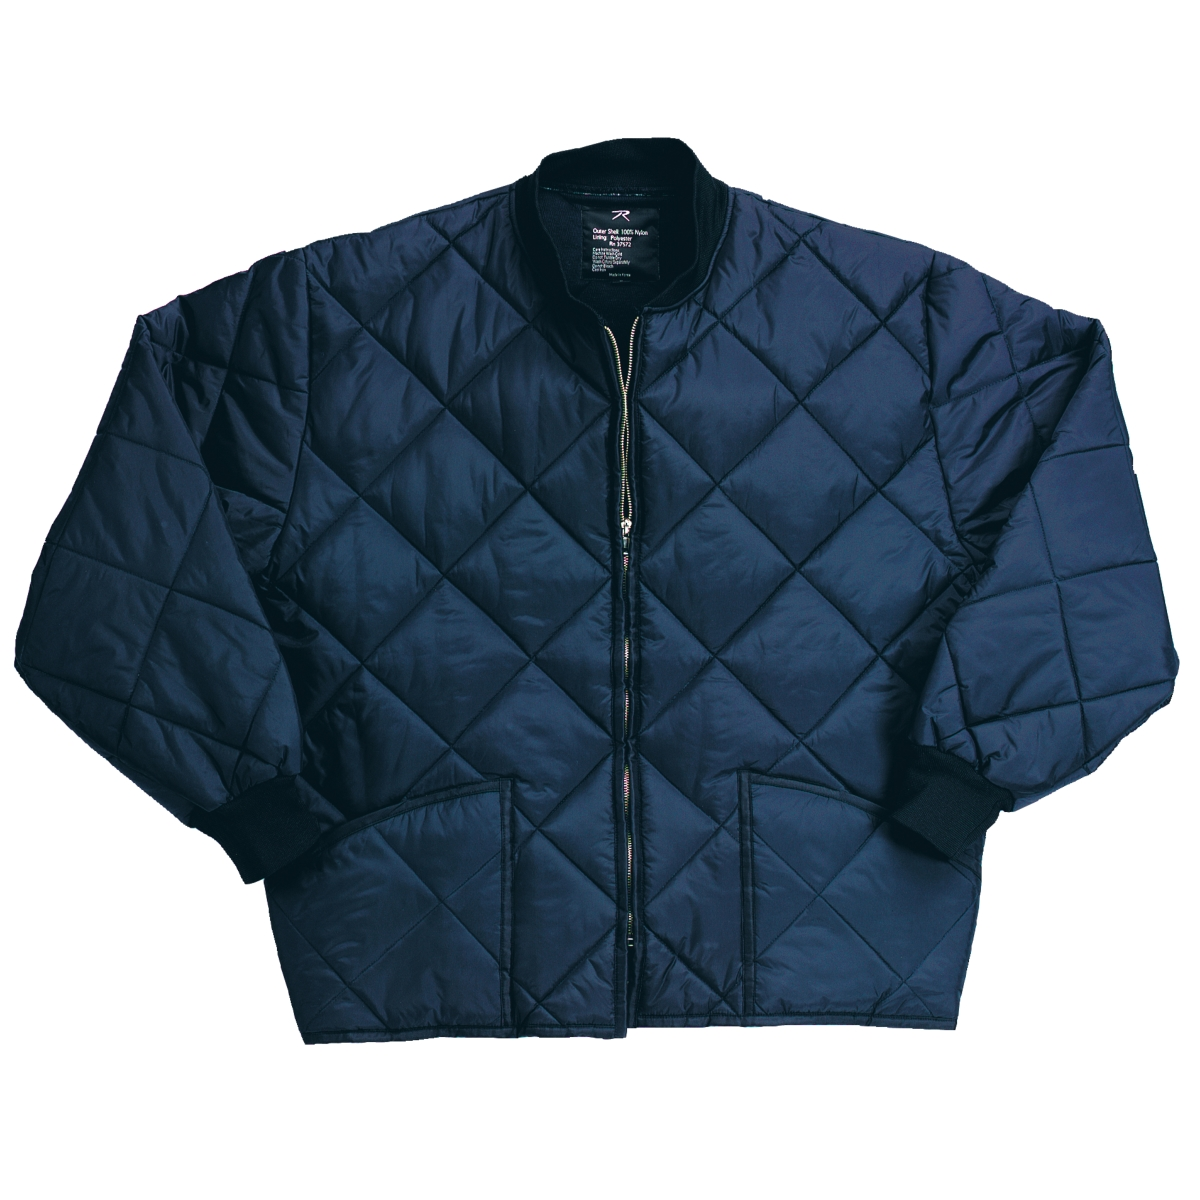 Diamond Quilted Flight Jacket, Navy Blue - Walmart.com